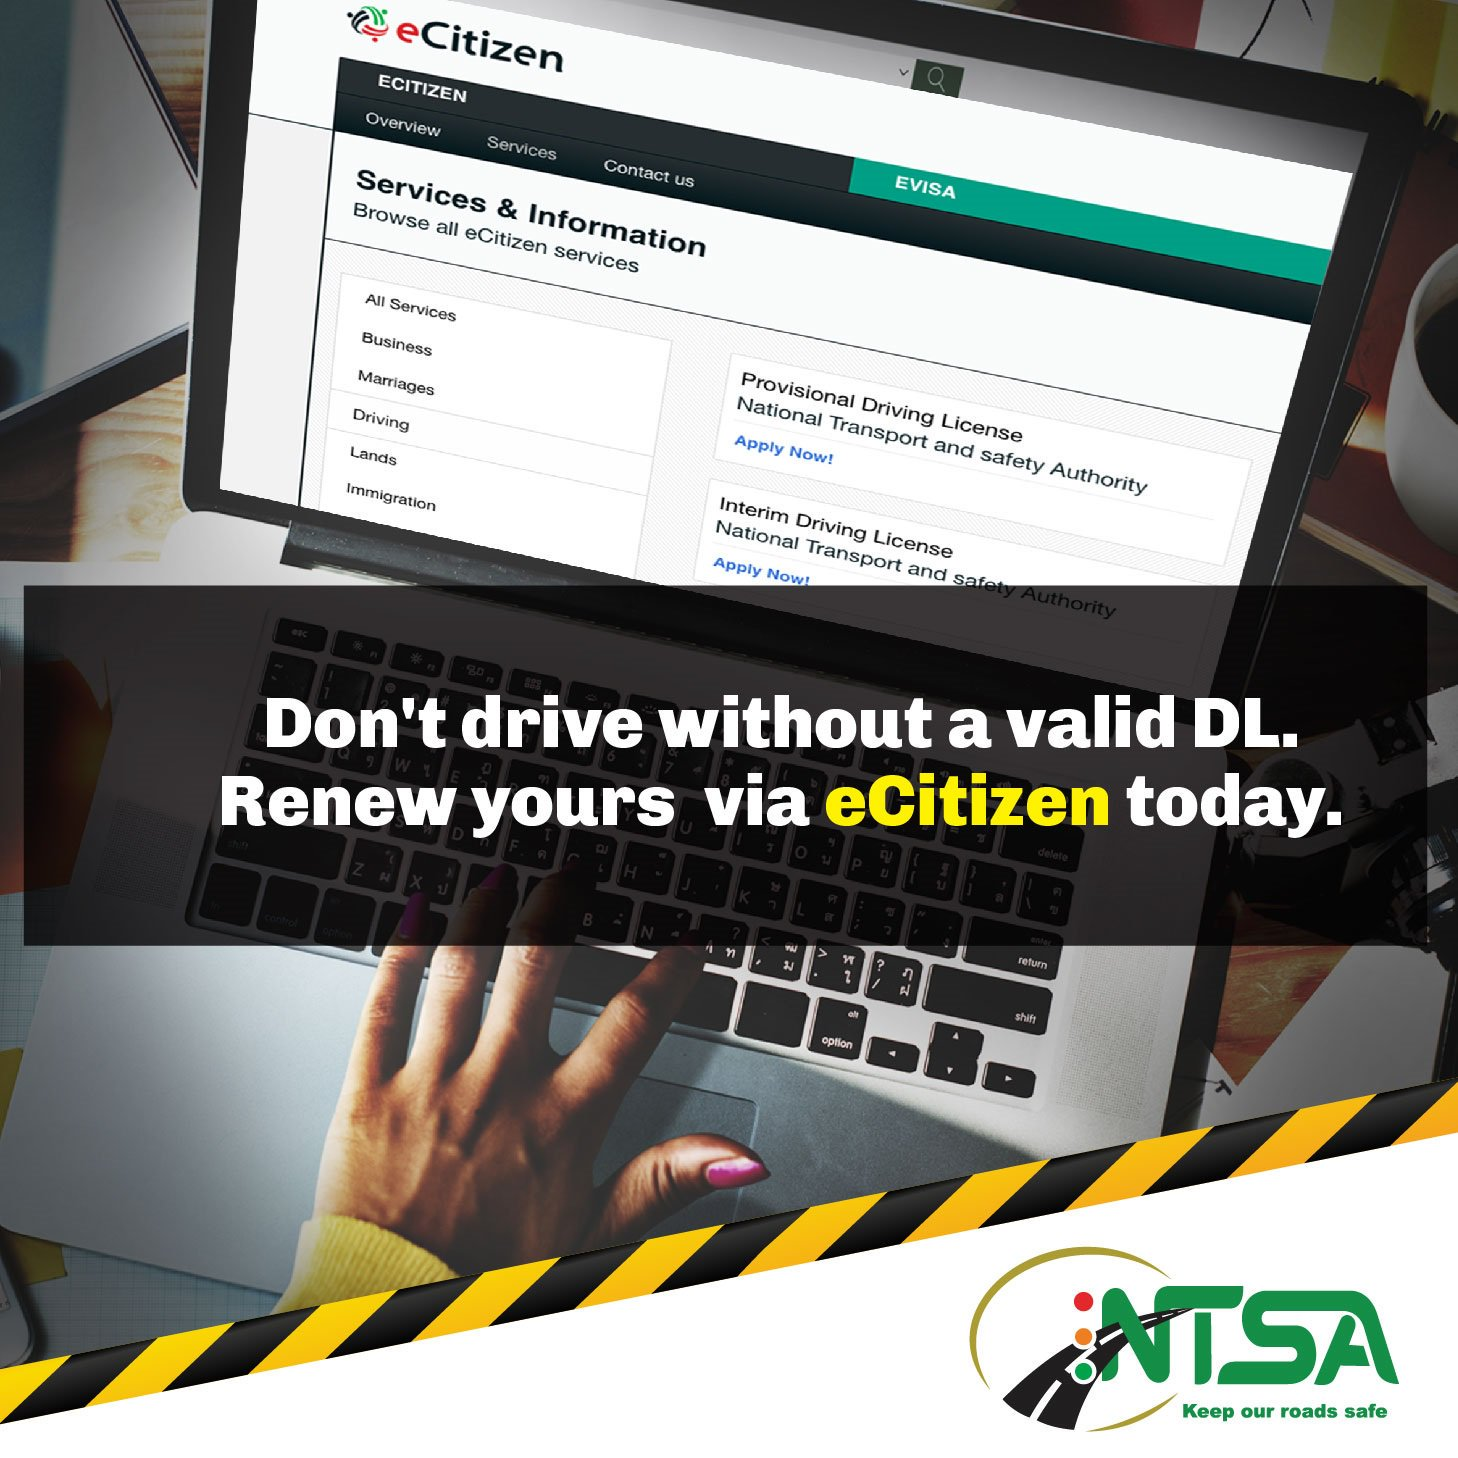 How to Apply for the New Digital Driving License